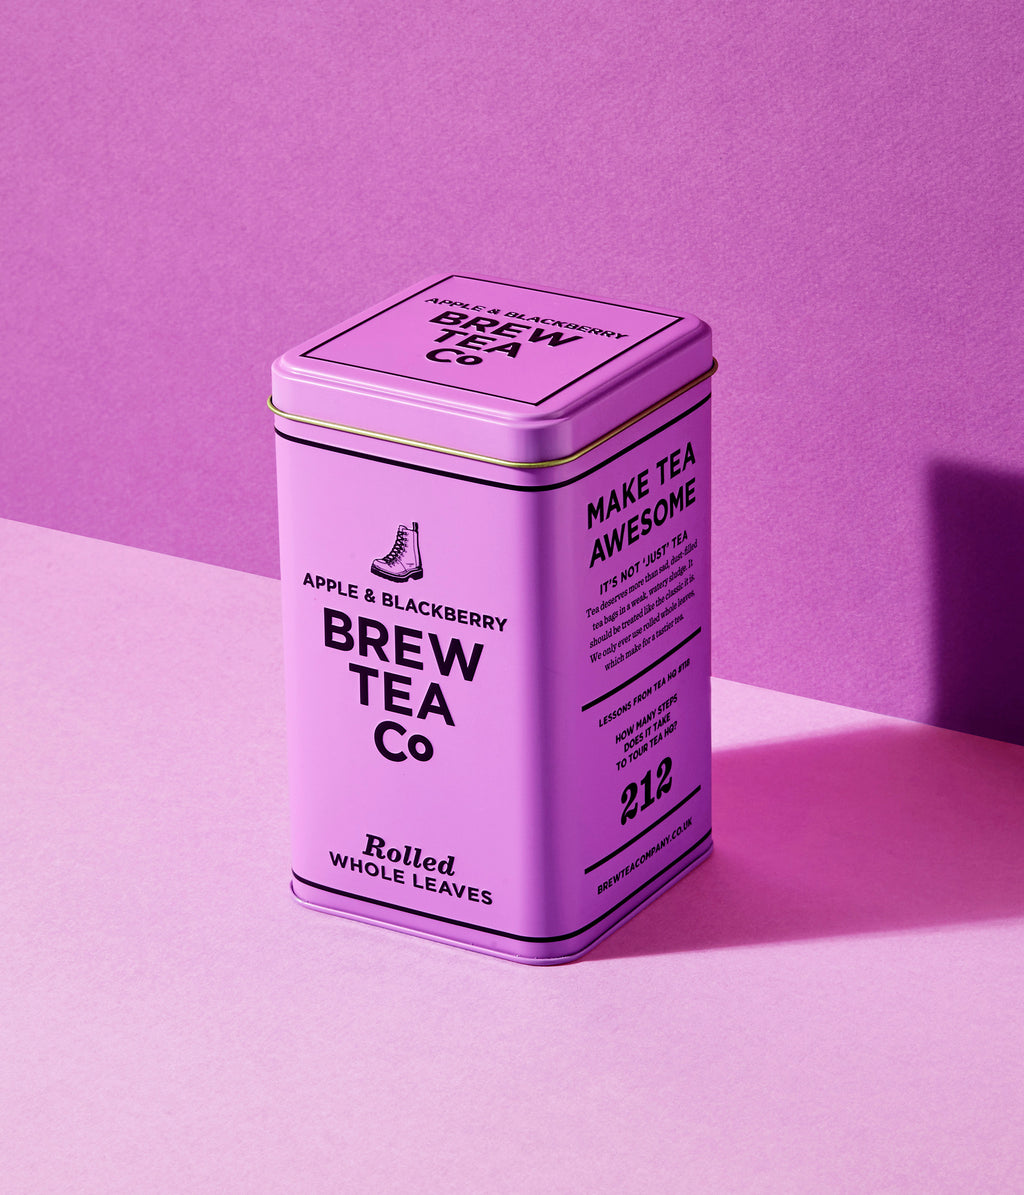 Apple & Blackberry - Loose Leaf Tea